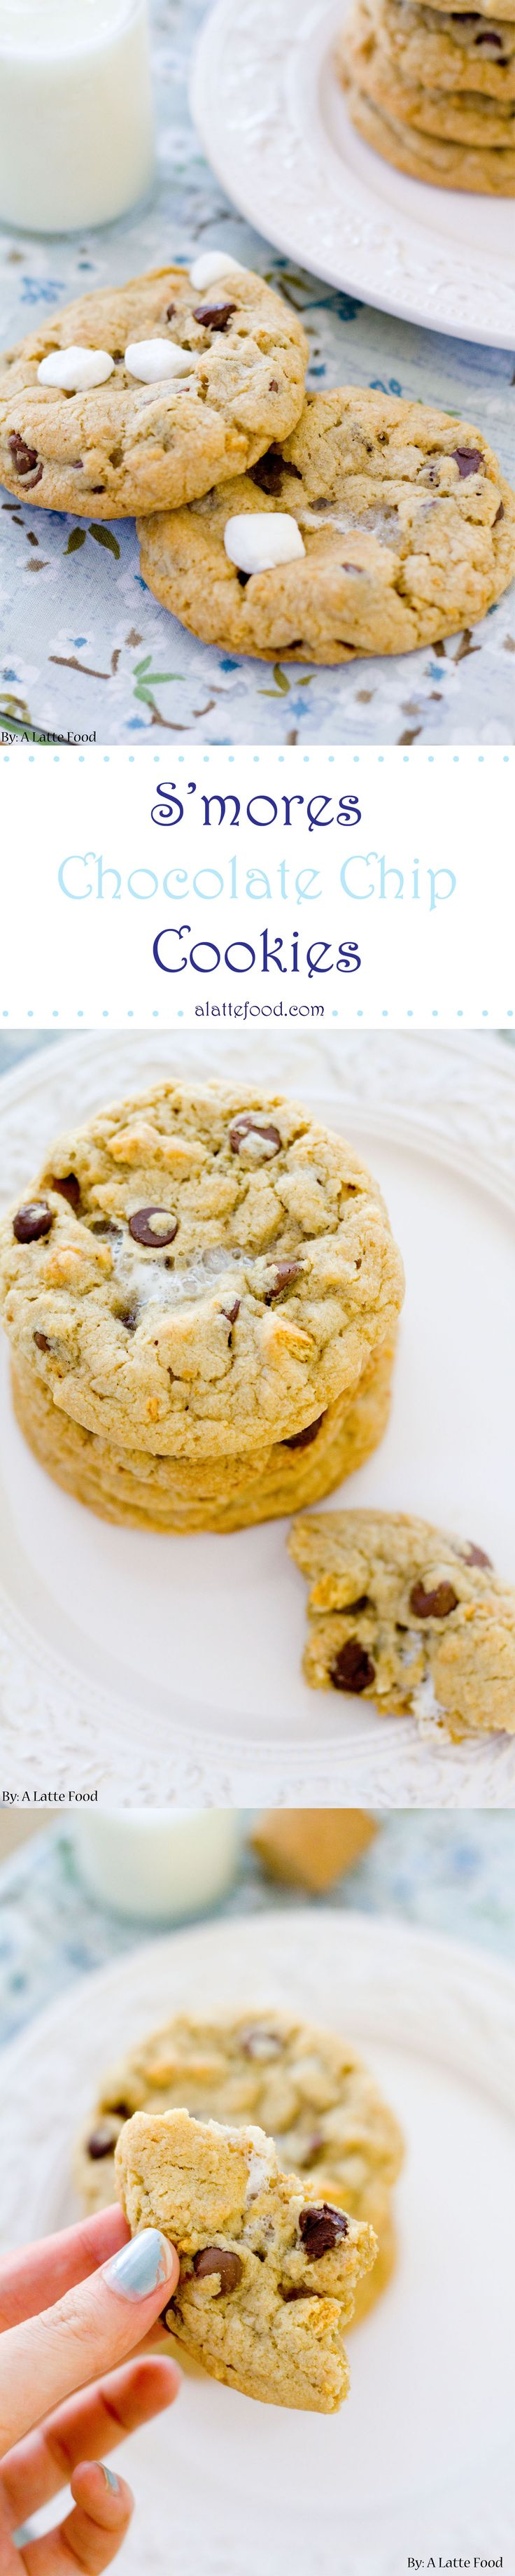 S'more Chocolate Chip Cookies: Your life will never be the same after these cookies. They're thick, soft and chewy, and full of graham crackers, chocolate, and marshmallowy goodness.